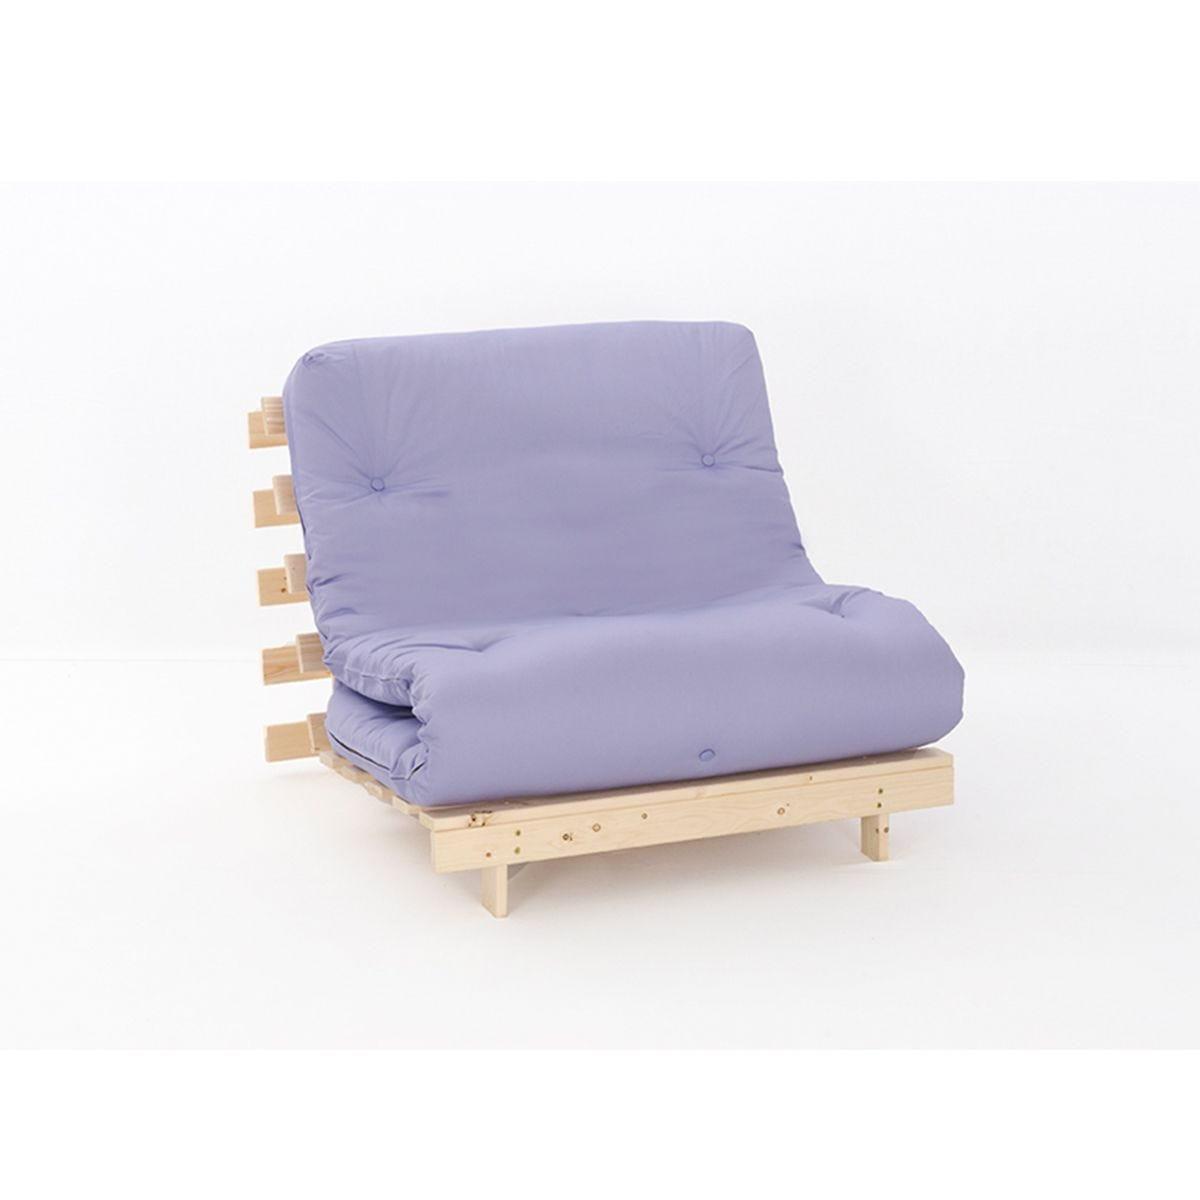 Ayr Futon Single Set With Tufted Mattress - Lilac